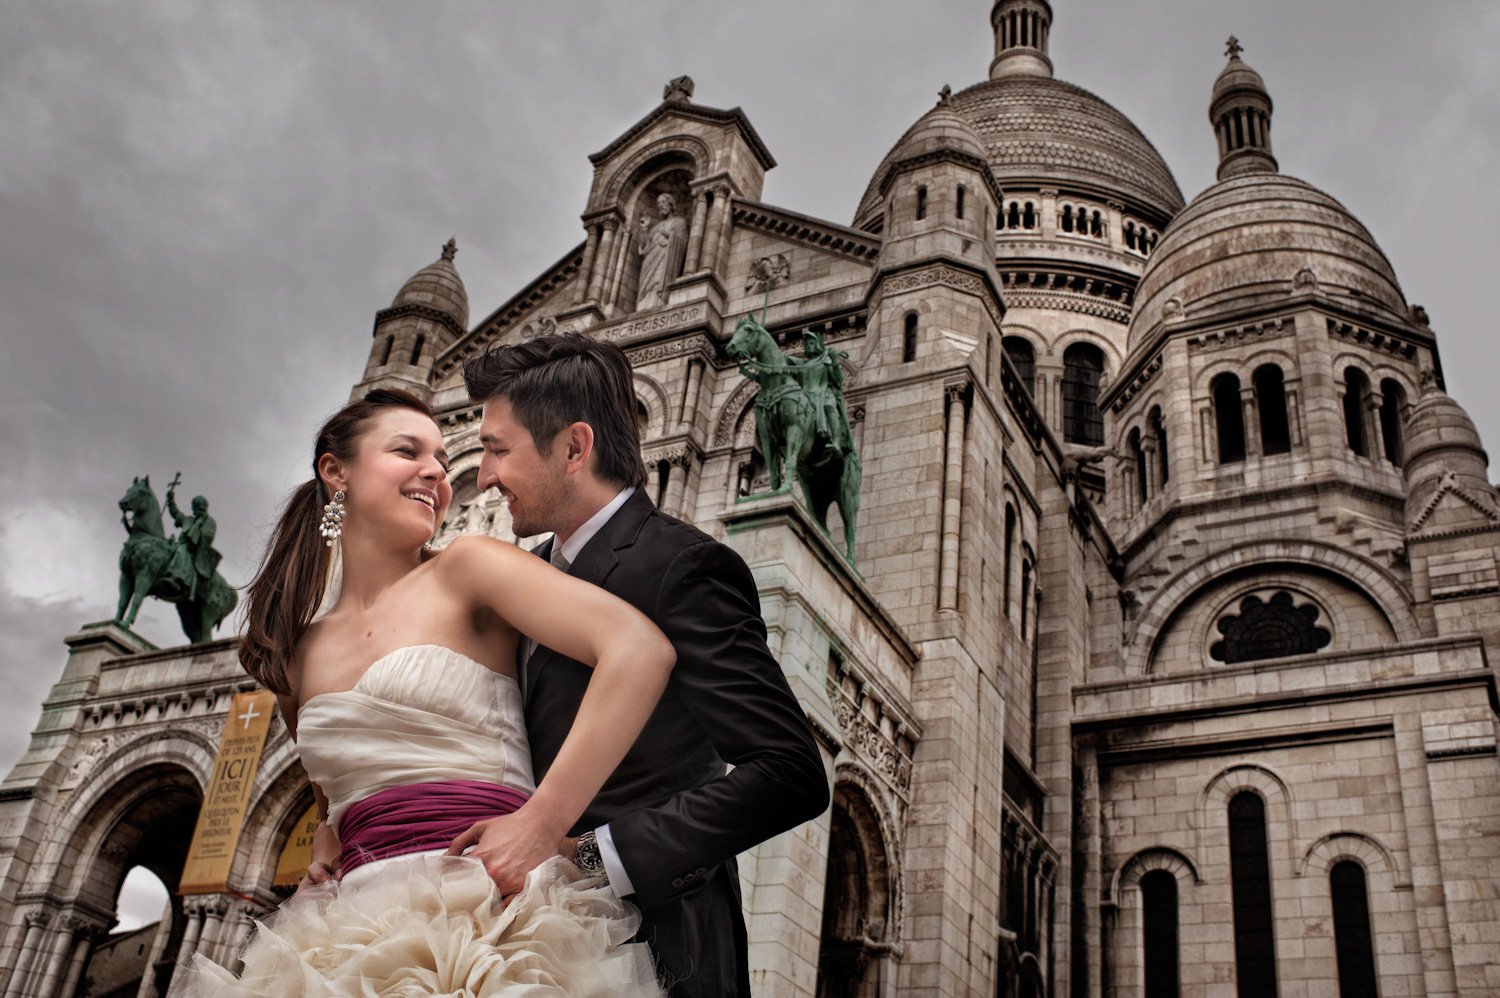 Lidija and Denis wedding photoshooting in Paris 4